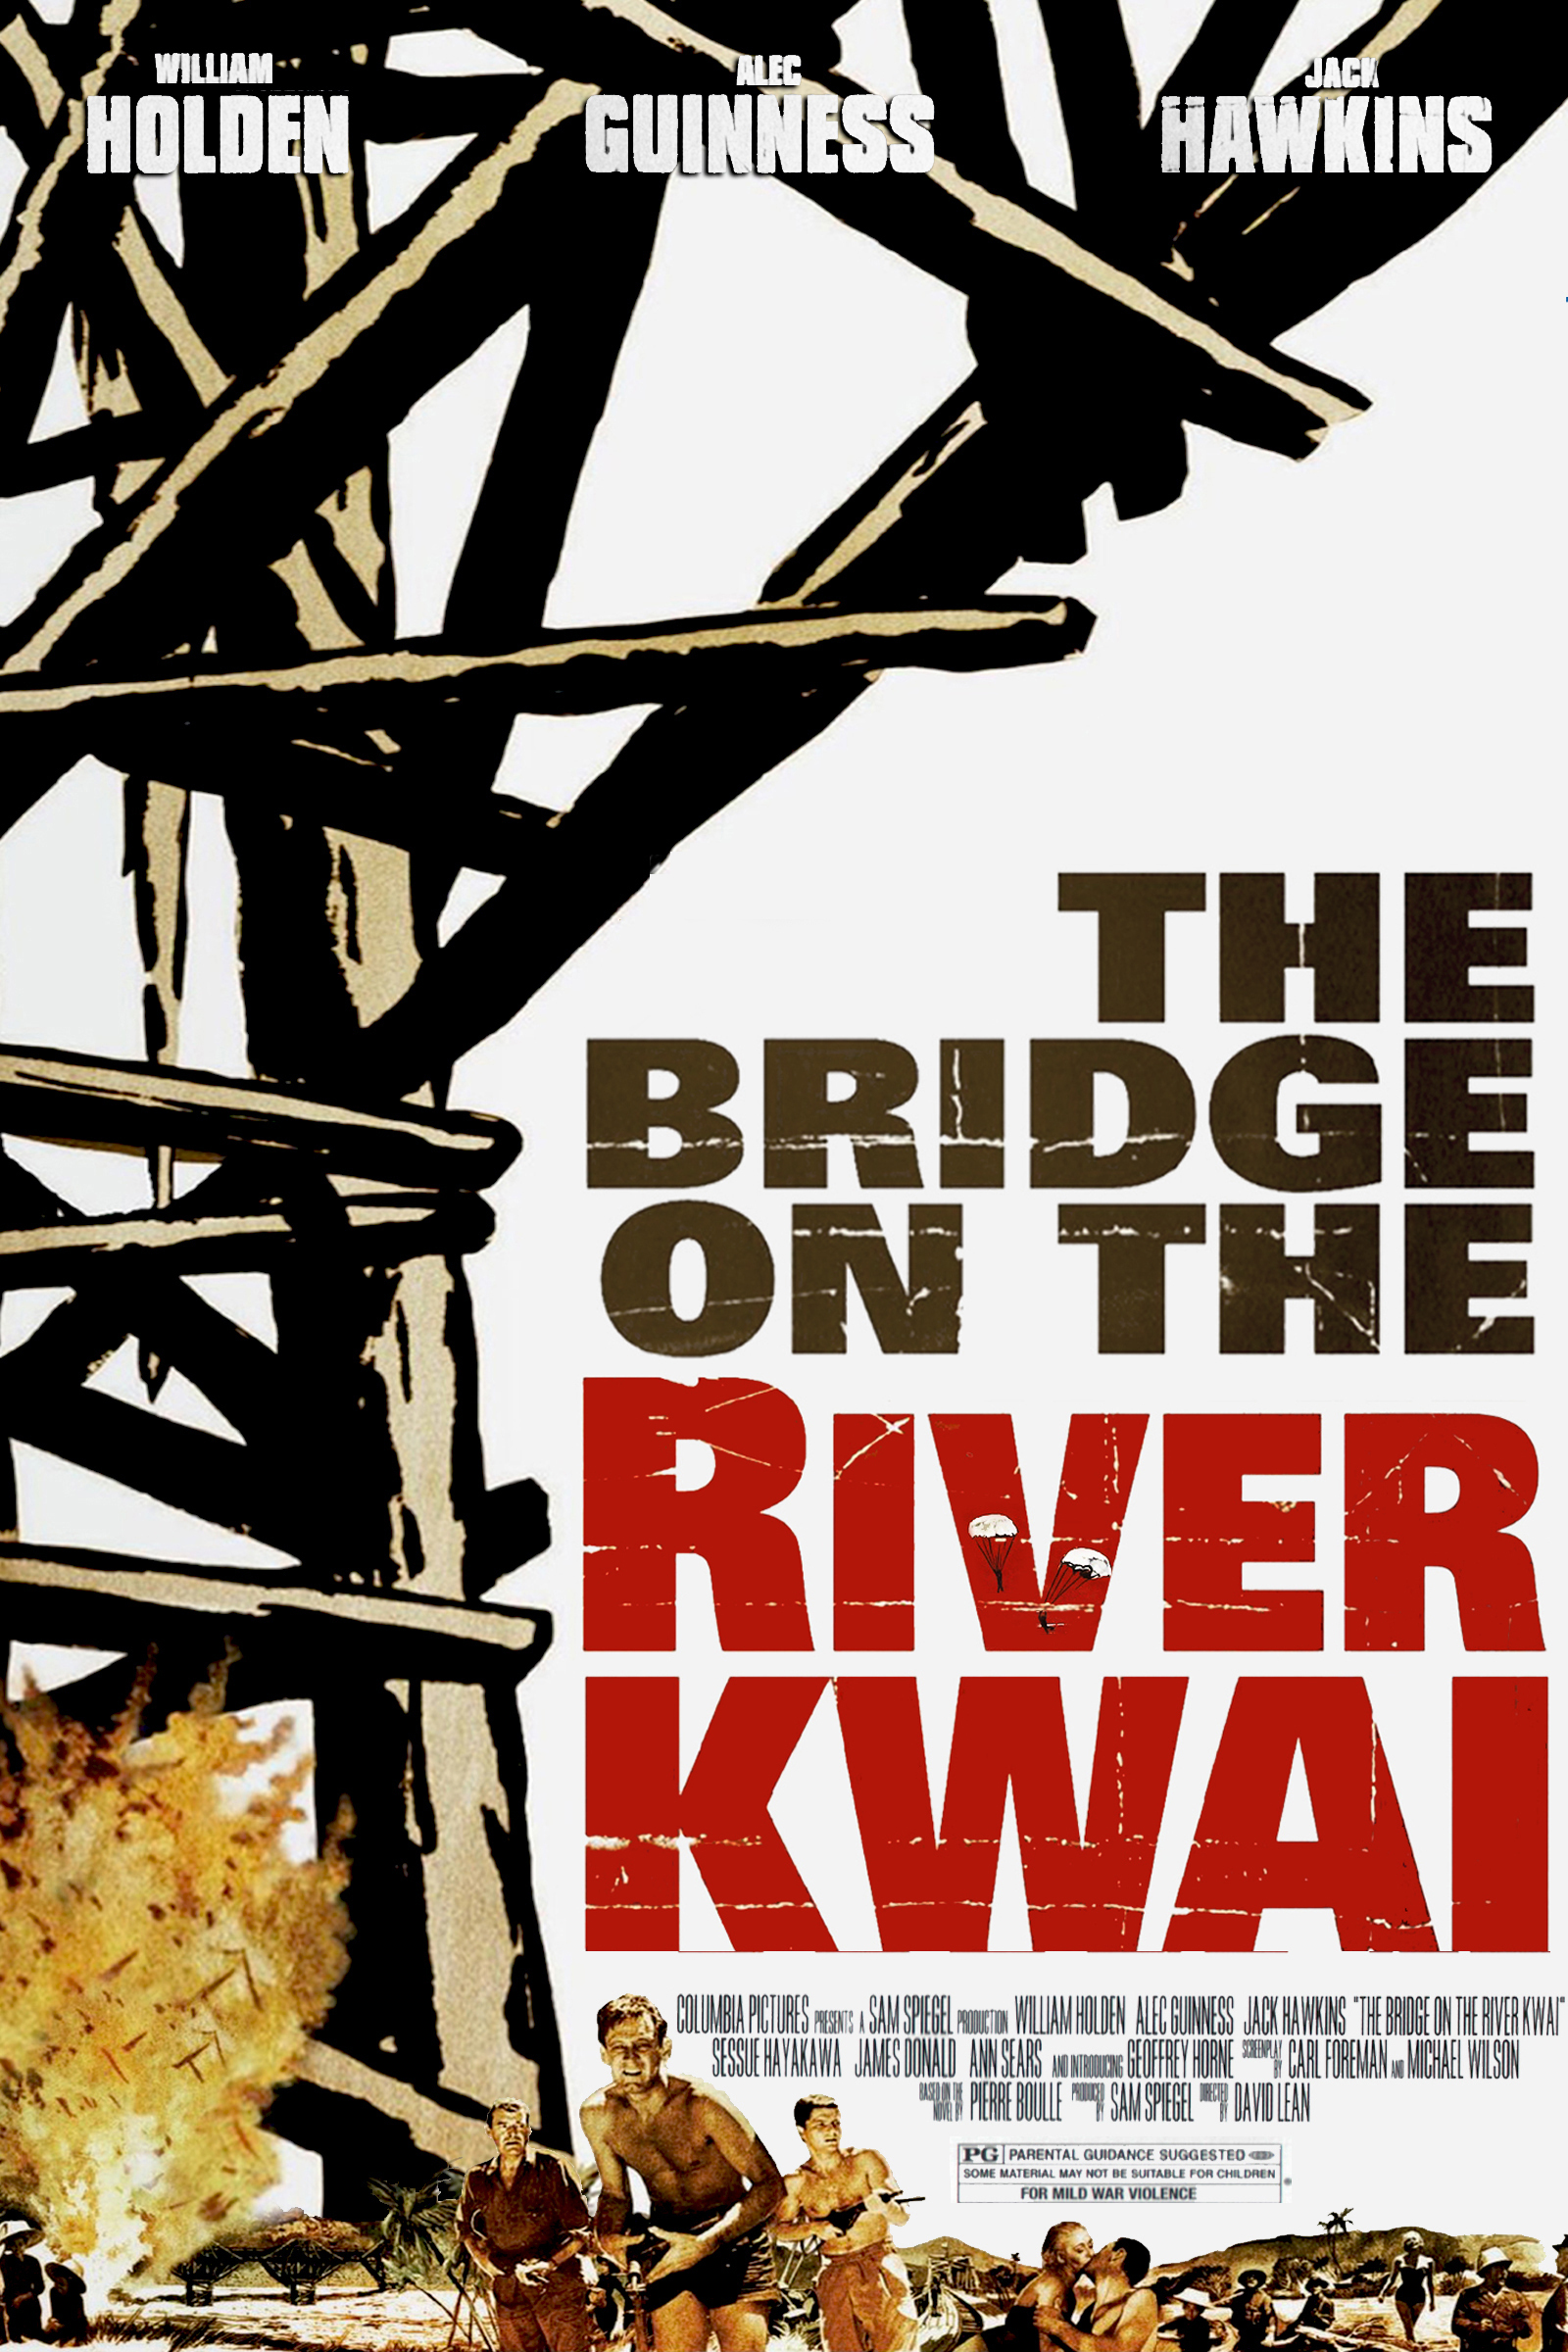 an overview of the bridge over the river kwai Overview toiling in the searing heat and humidity, over 60,000 australian,   immortalised by david lean's film 'the bridge on the river kwai', based on a  book.